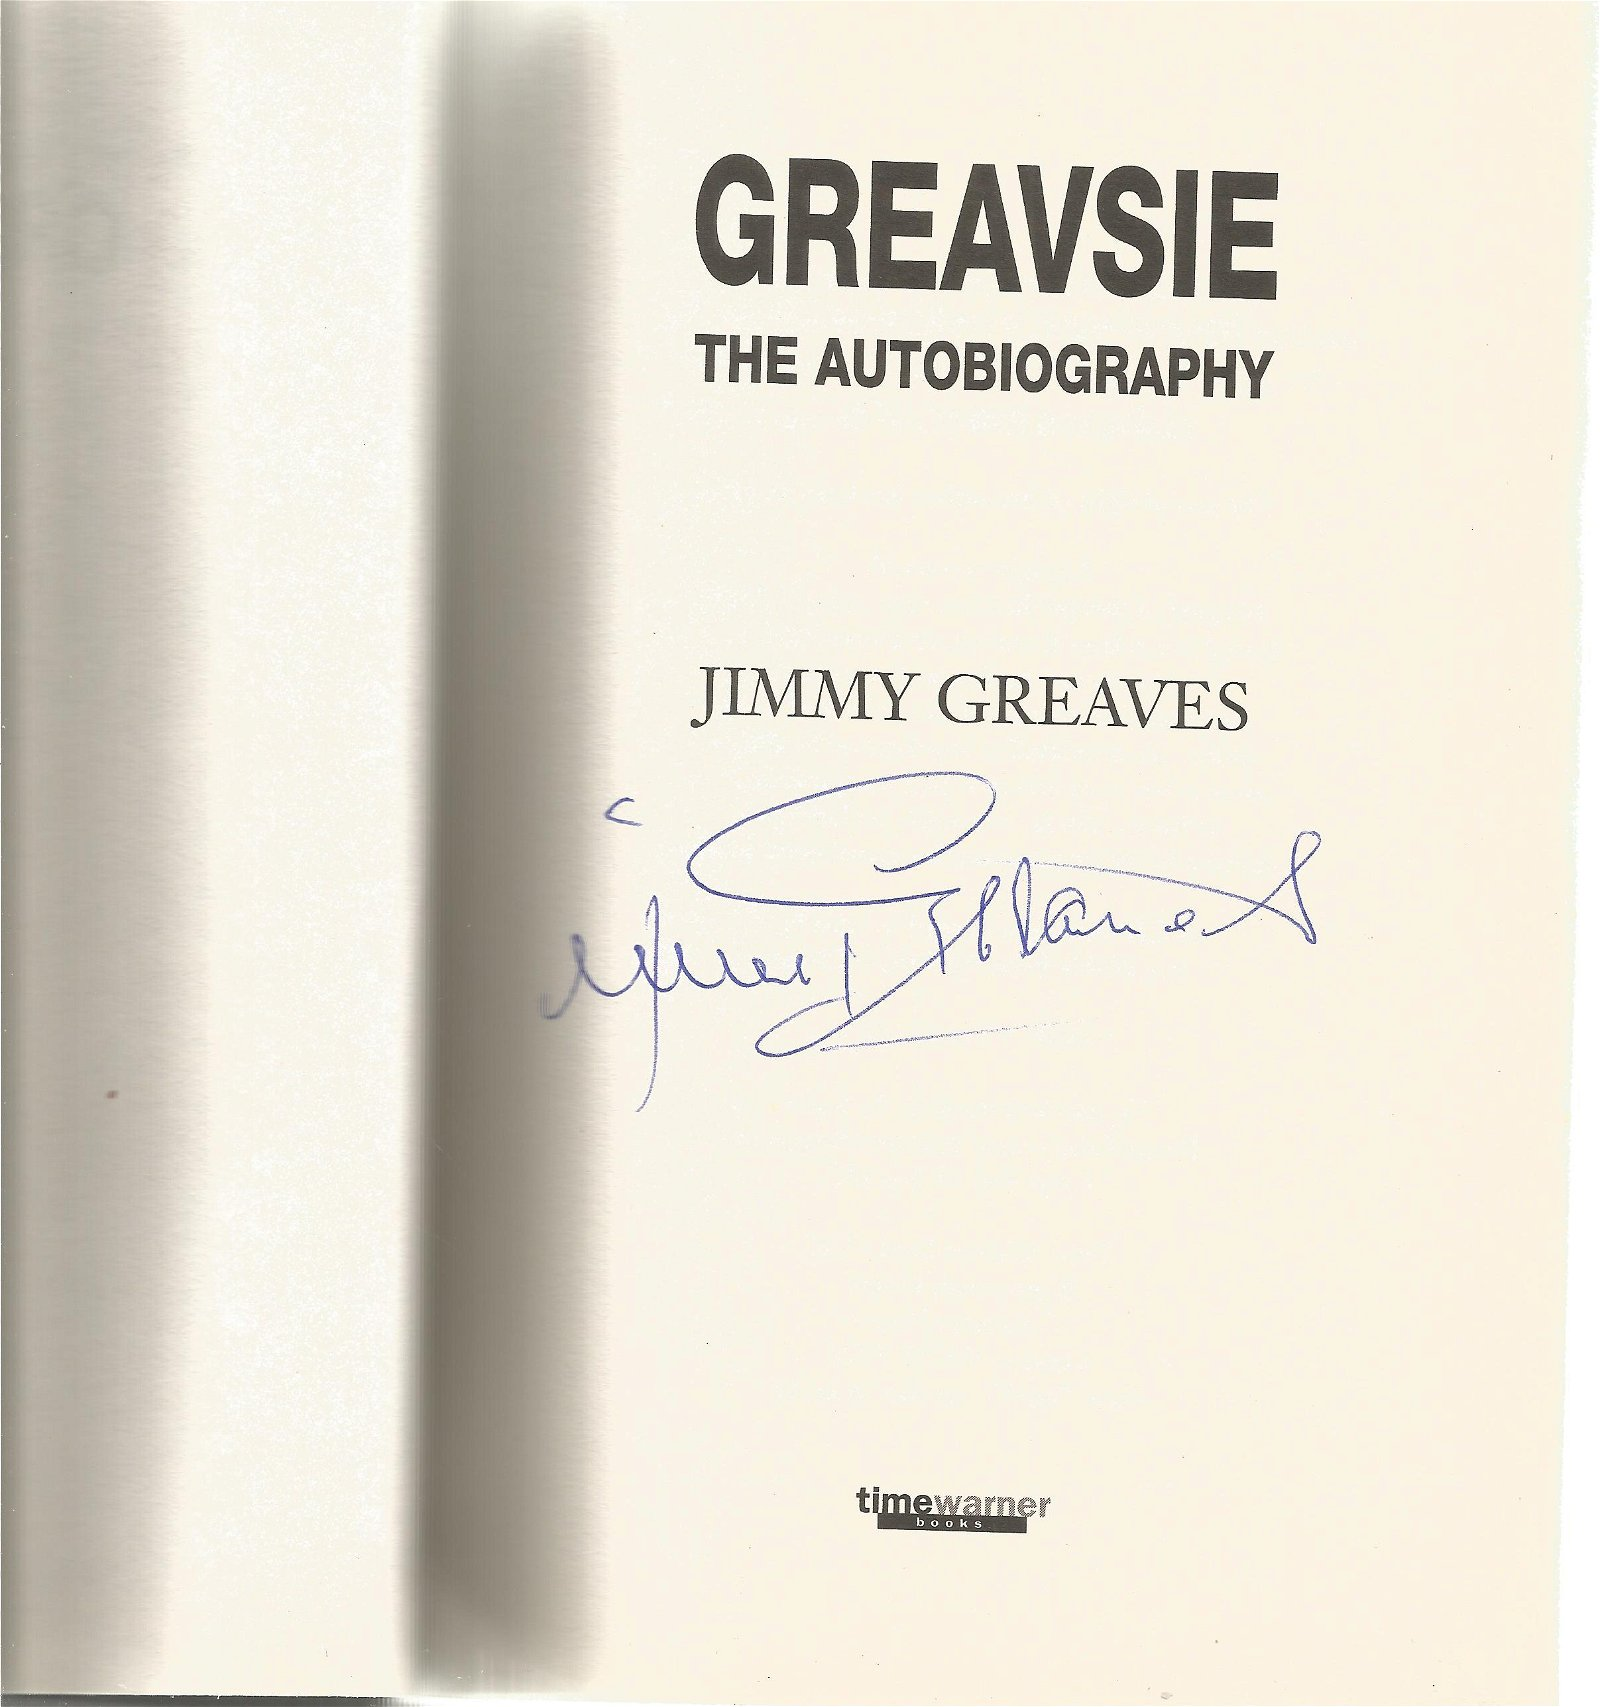 Jimmy Greaves signed The Autobiography hardback book,